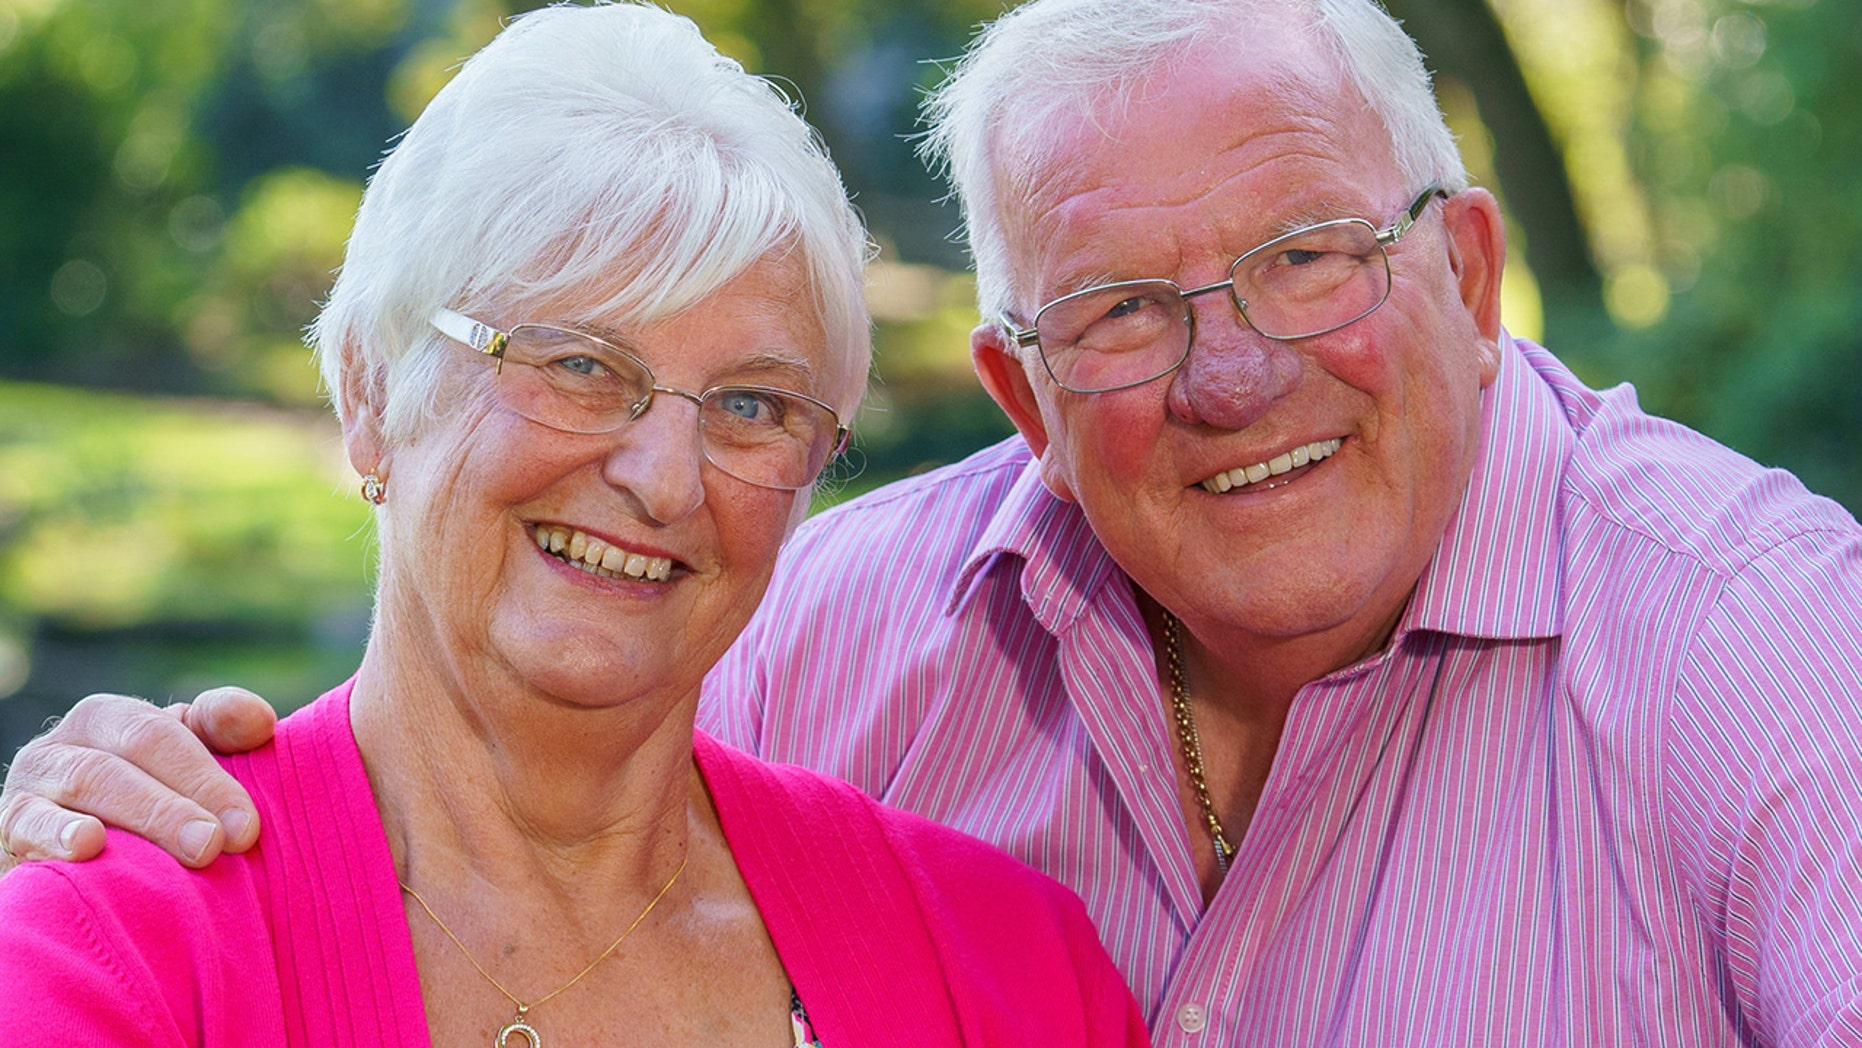 Westlake Legal Group Happy-Couple-SWNS-cropped Husband, wife declared Britain's 'happiest couple' say they've only had one argument in 50 years Gerren Keith Gaynor fox-news/lifestyle/relationships fox-news/entertainment/events/marriage fox news fnc/lifestyle fnc article 9fc12bb5-d6f1-5a8e-866b-03080015a757